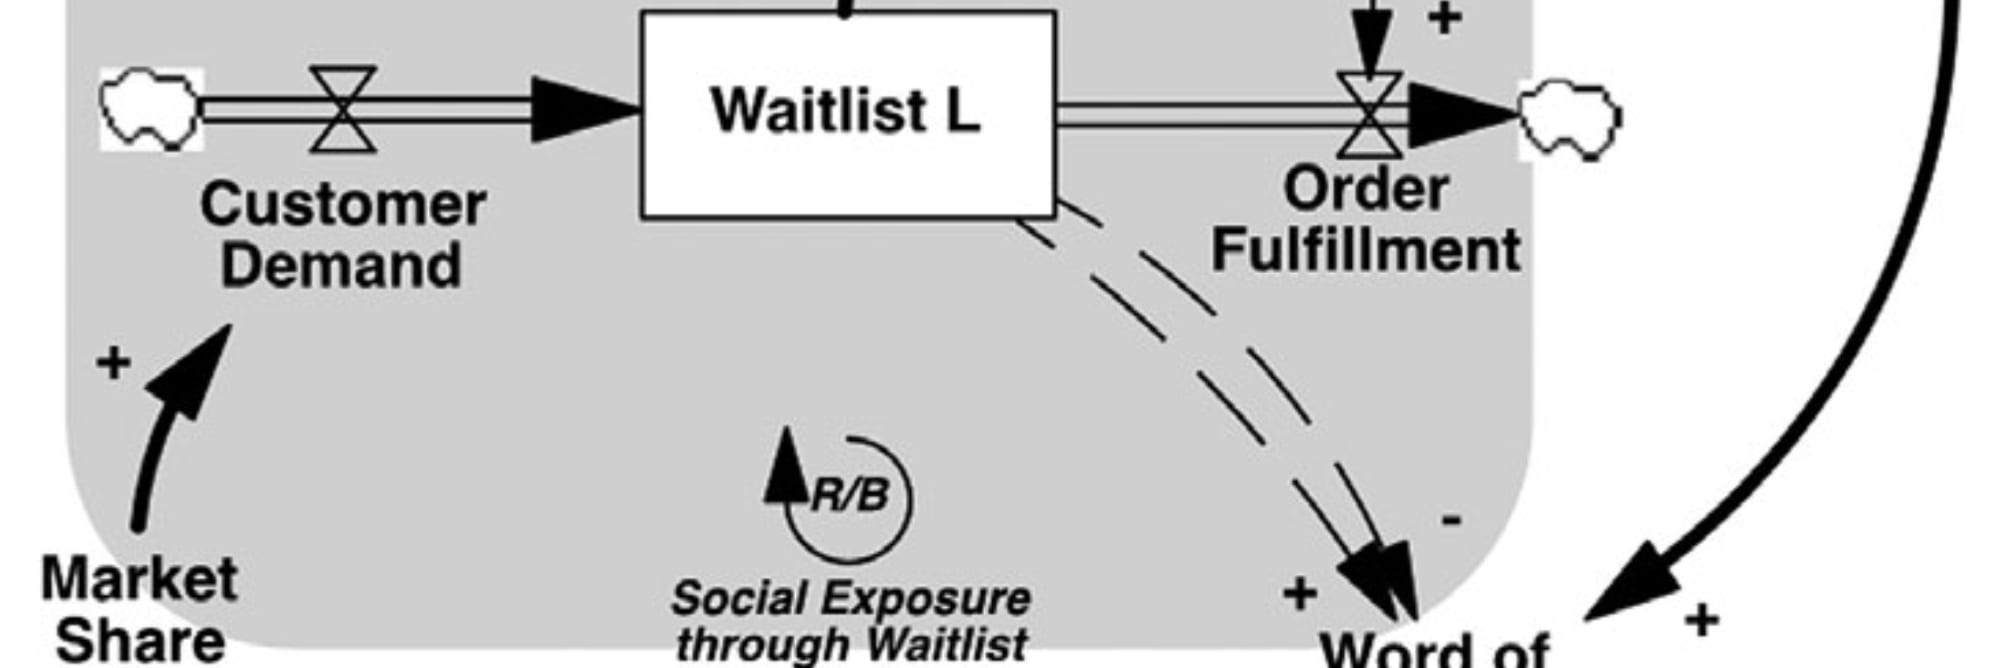 Supply constraints and waitlists in new product diffusion